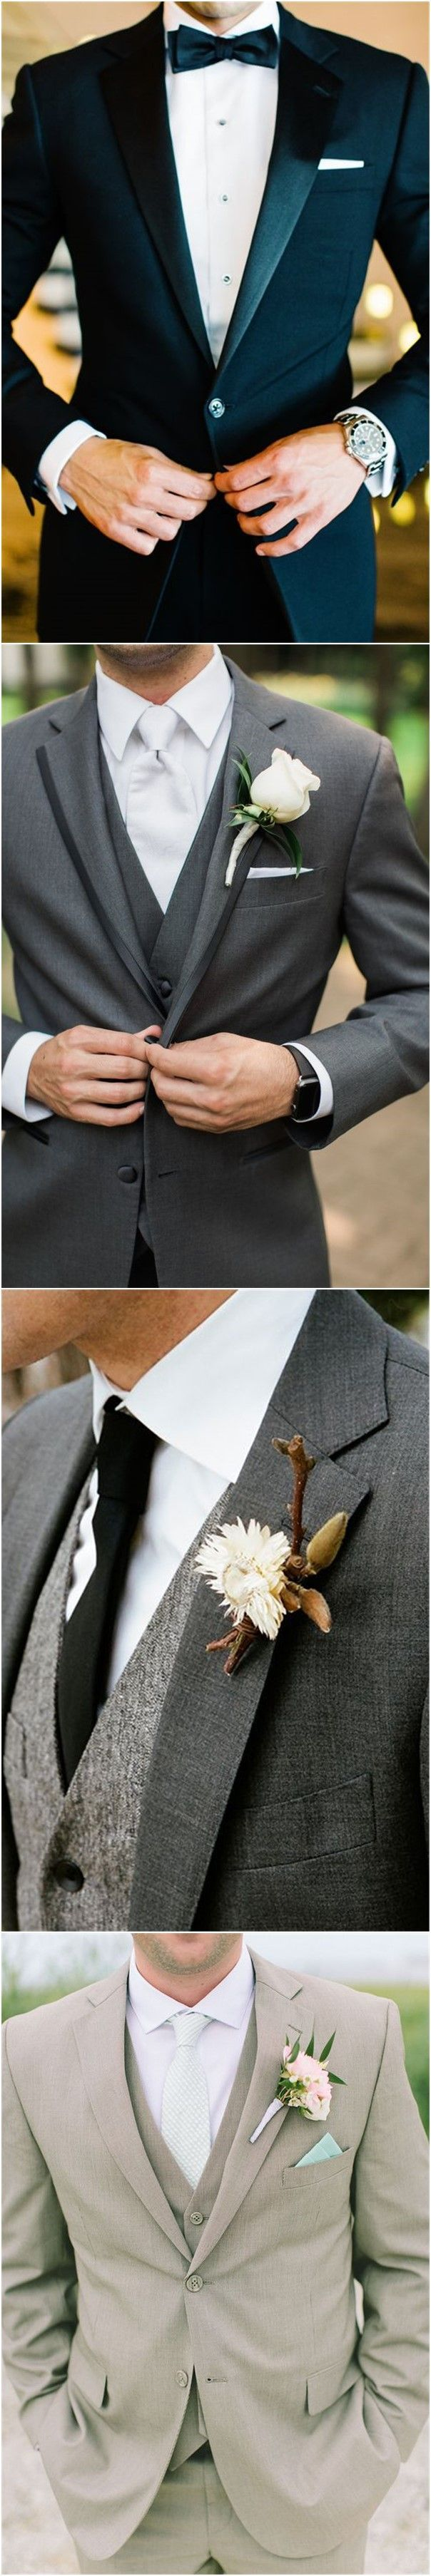 Pin by plaza lecea on for the groom in pinterest wedding